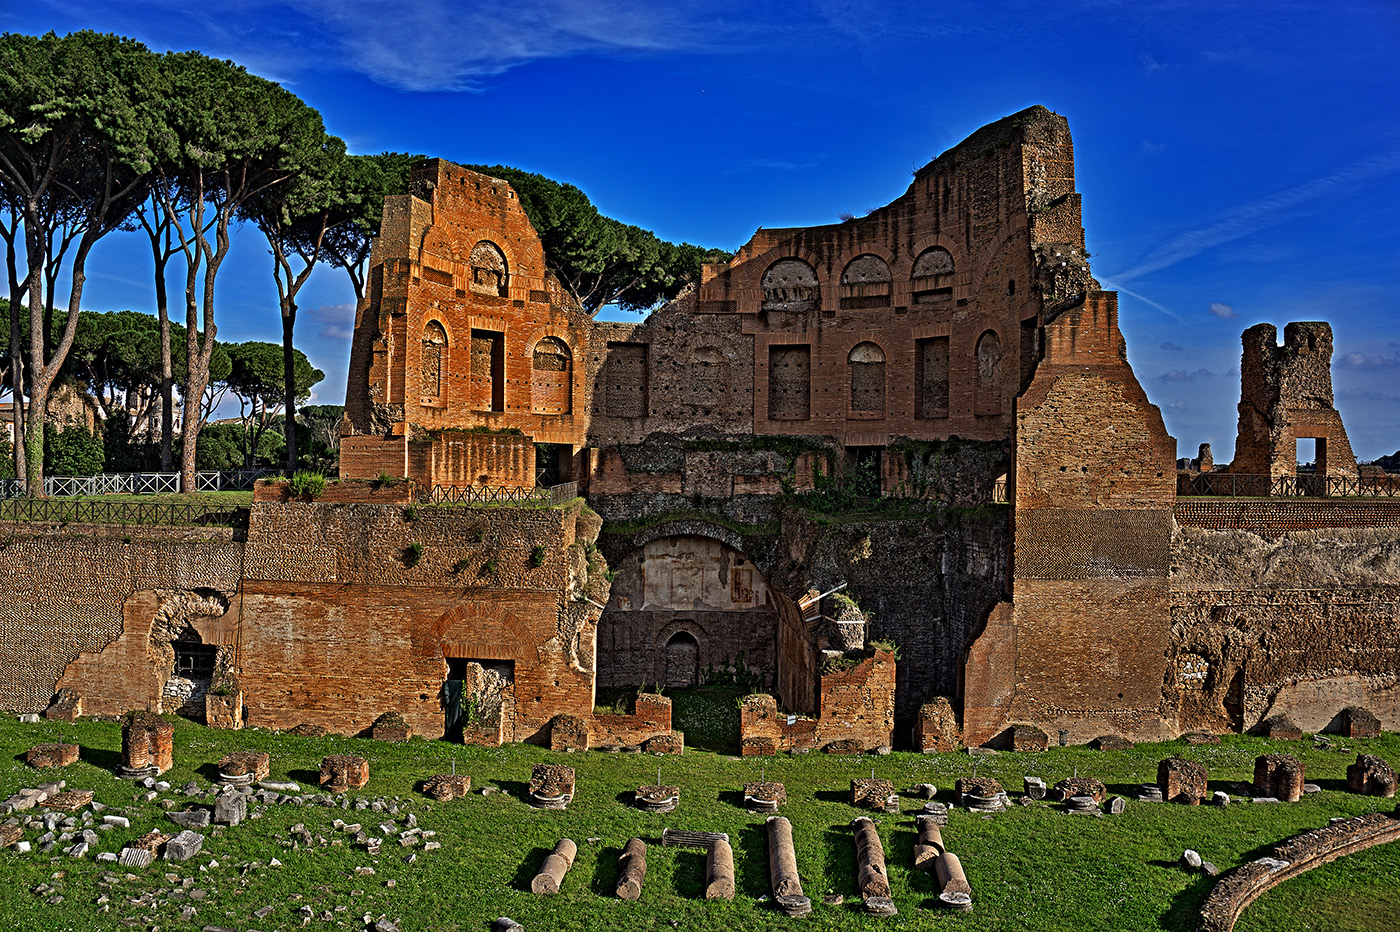 Ruins atop Palatine Hill in Rome, Italy